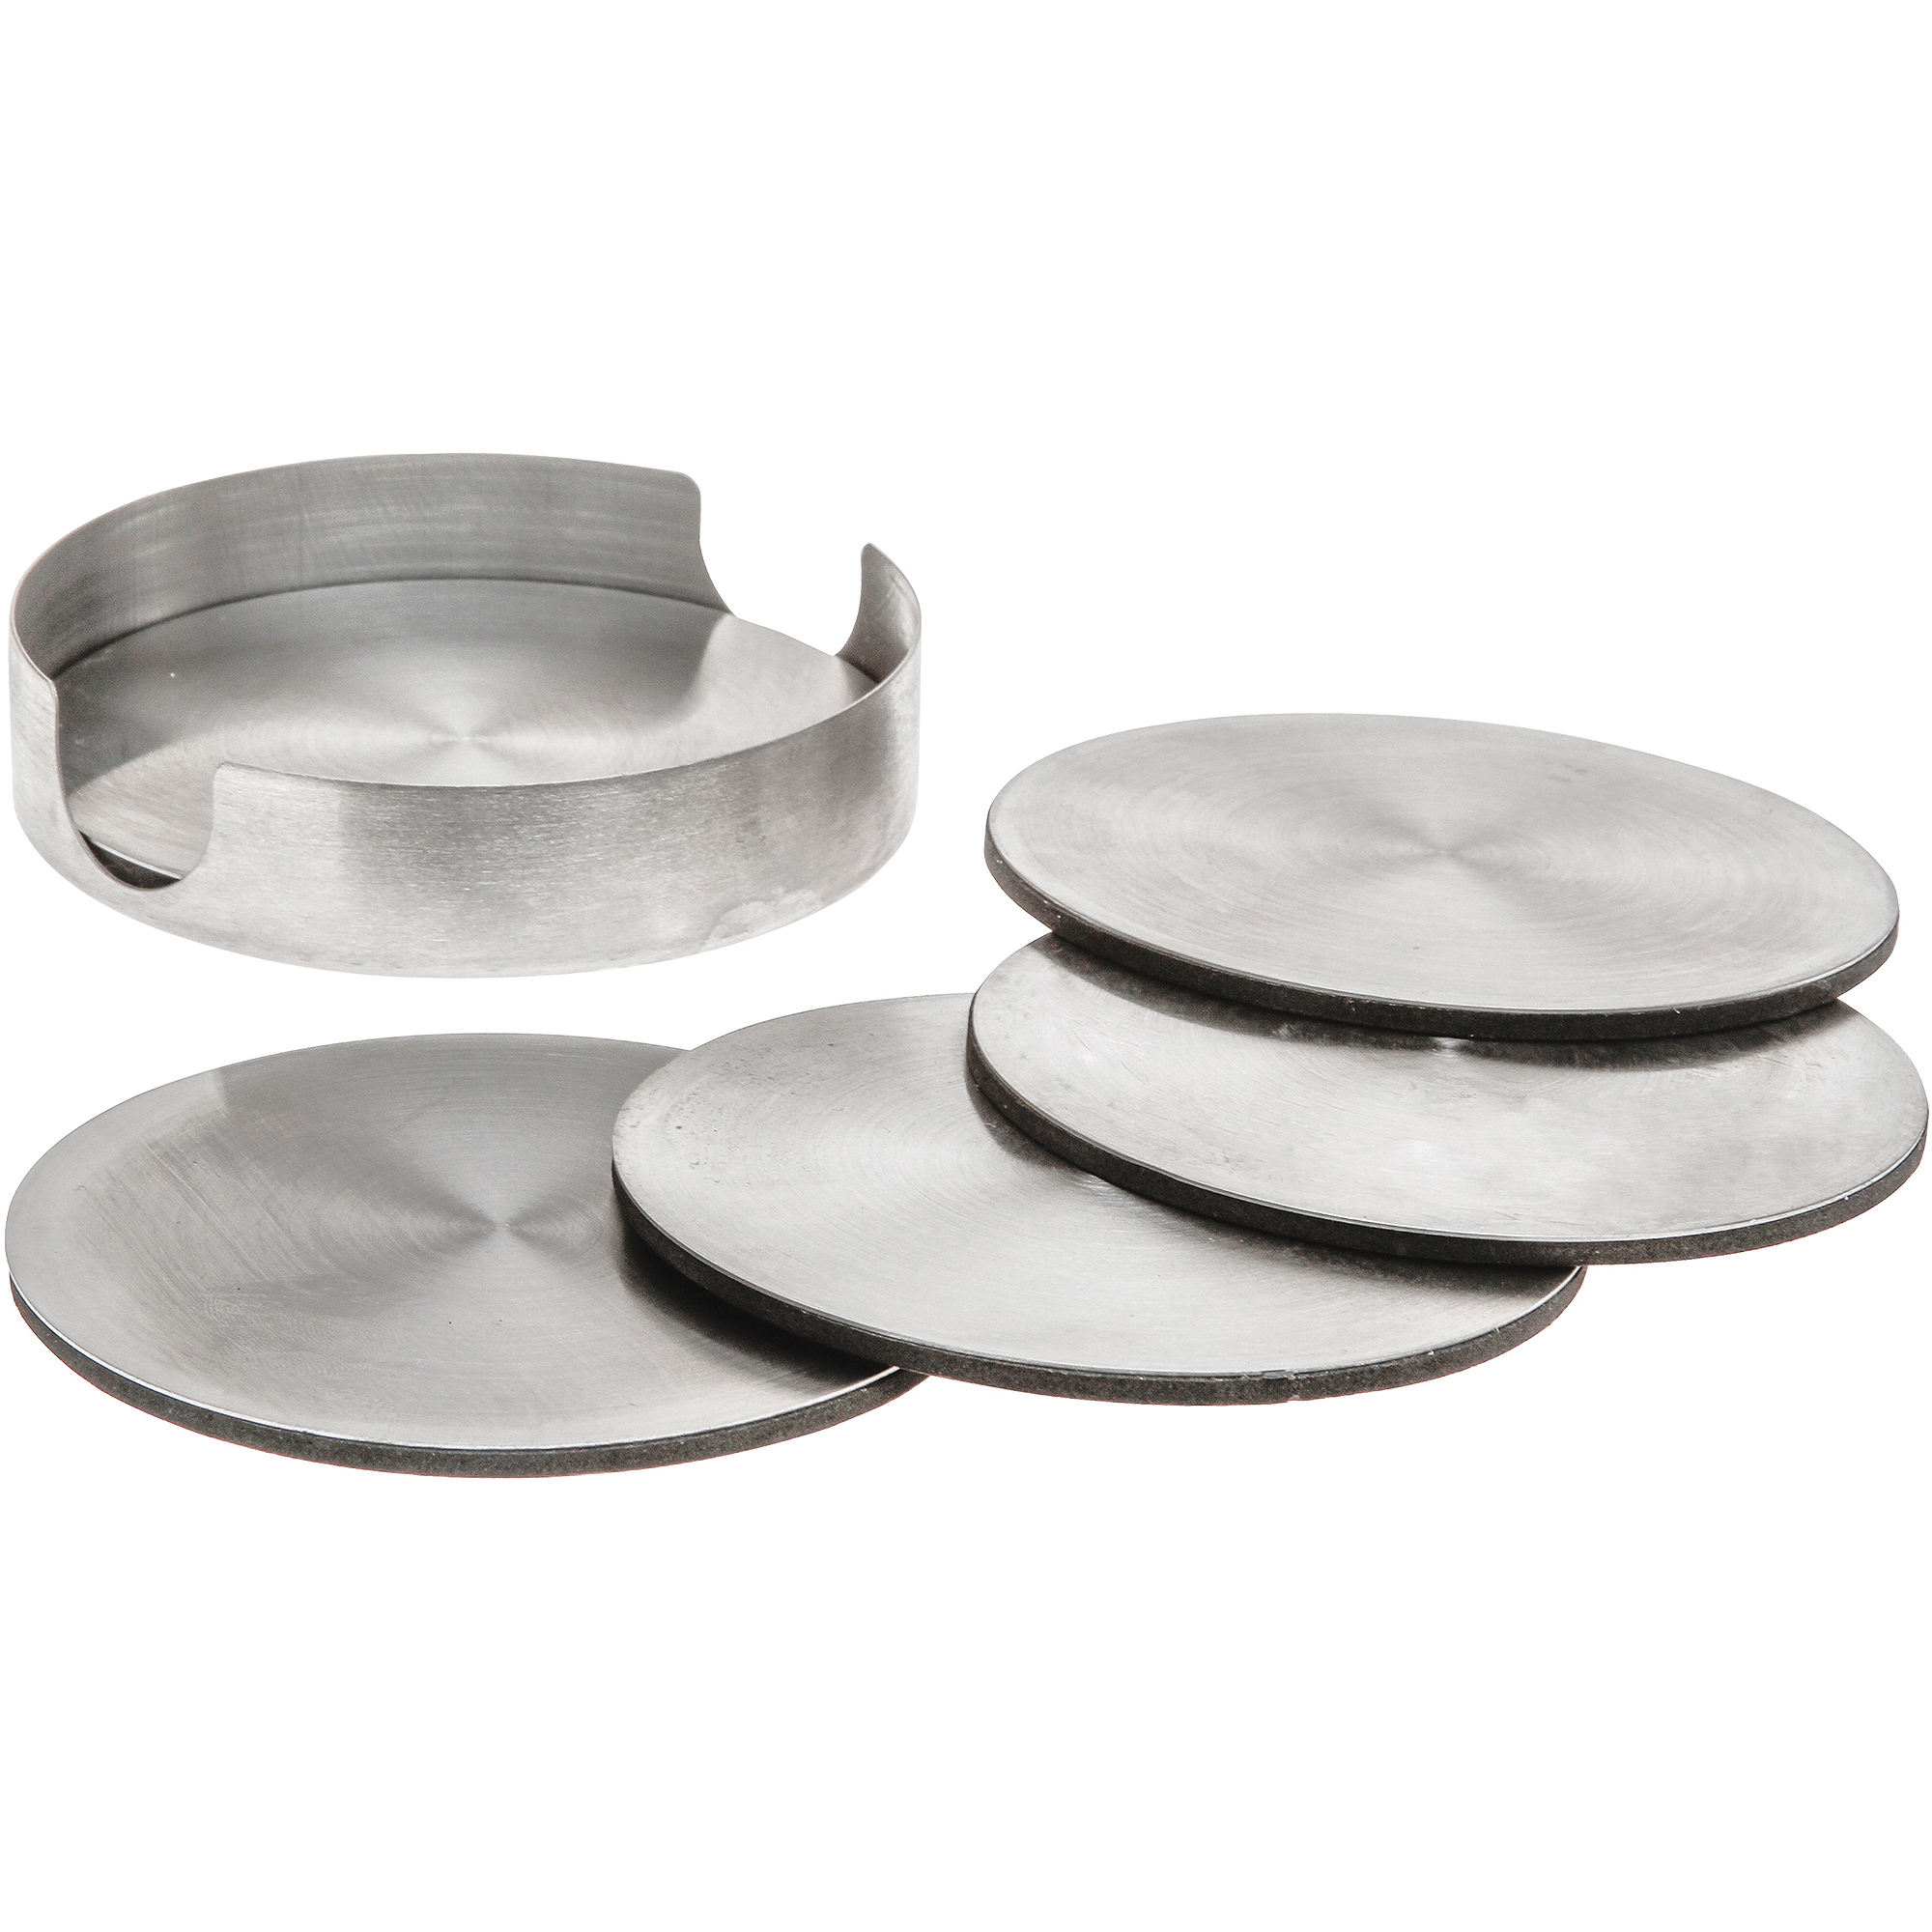 Czoc Housewares Drink Coasters, Stainless Steel Round